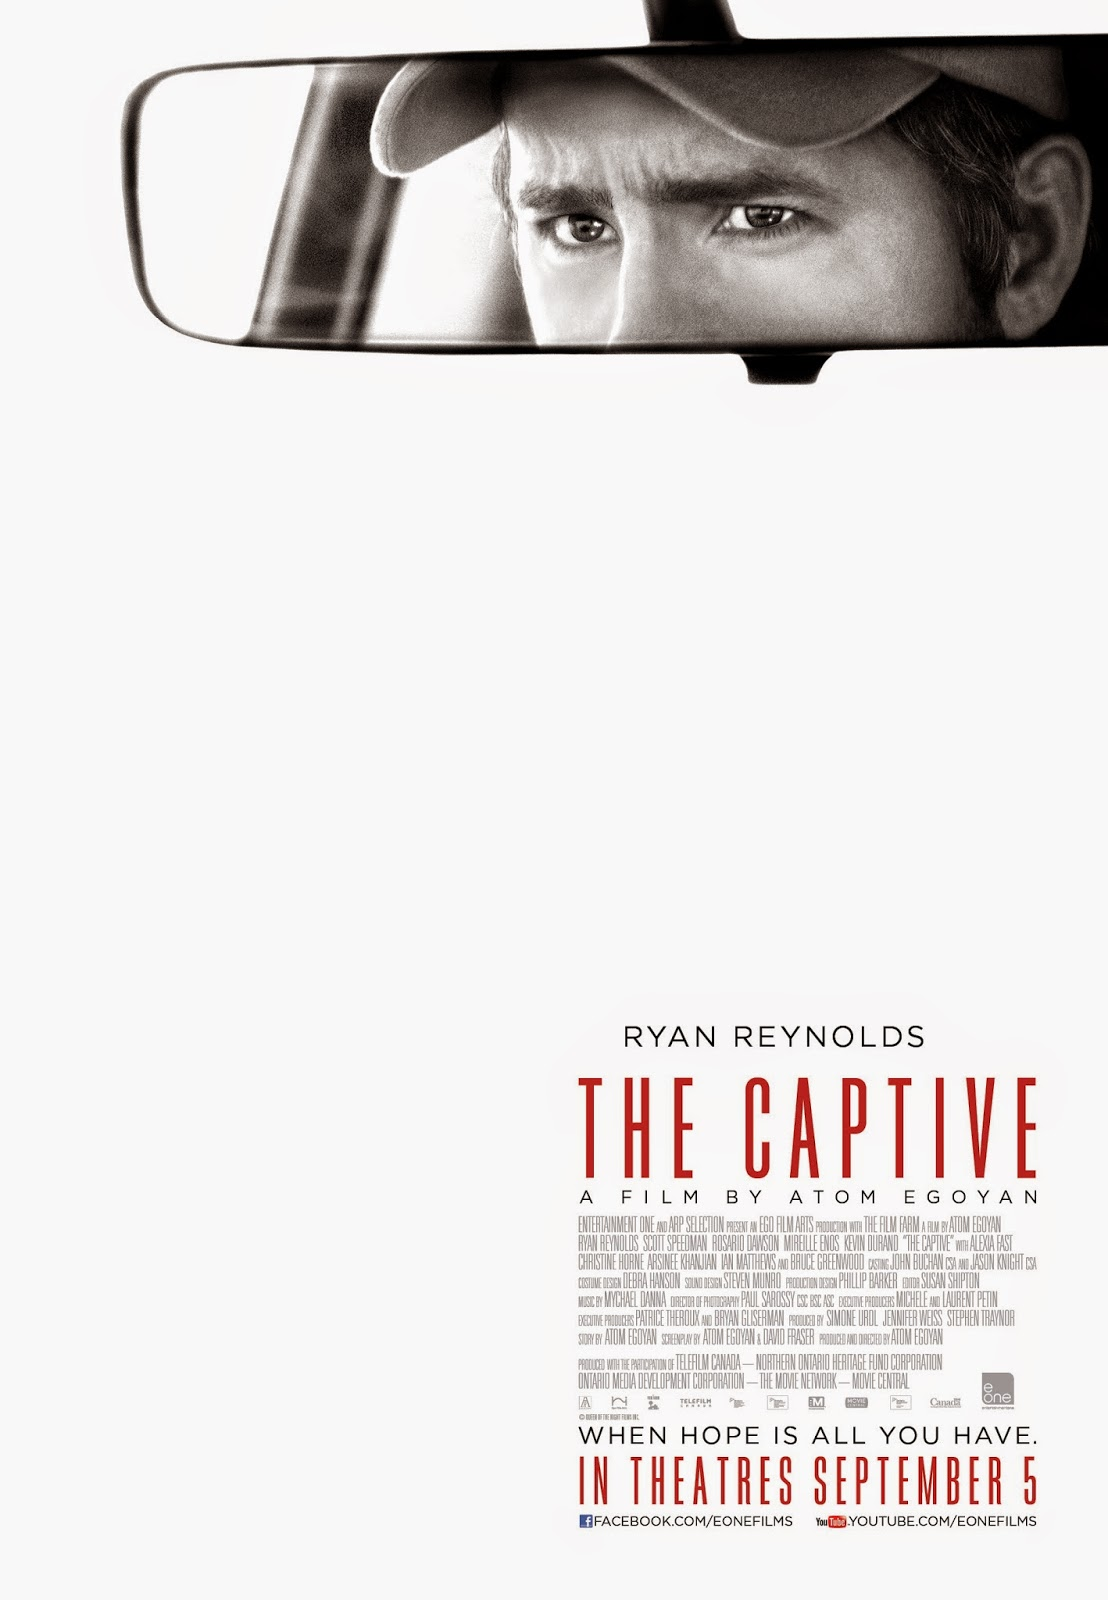 Win Tickets to see 'The Captive'!